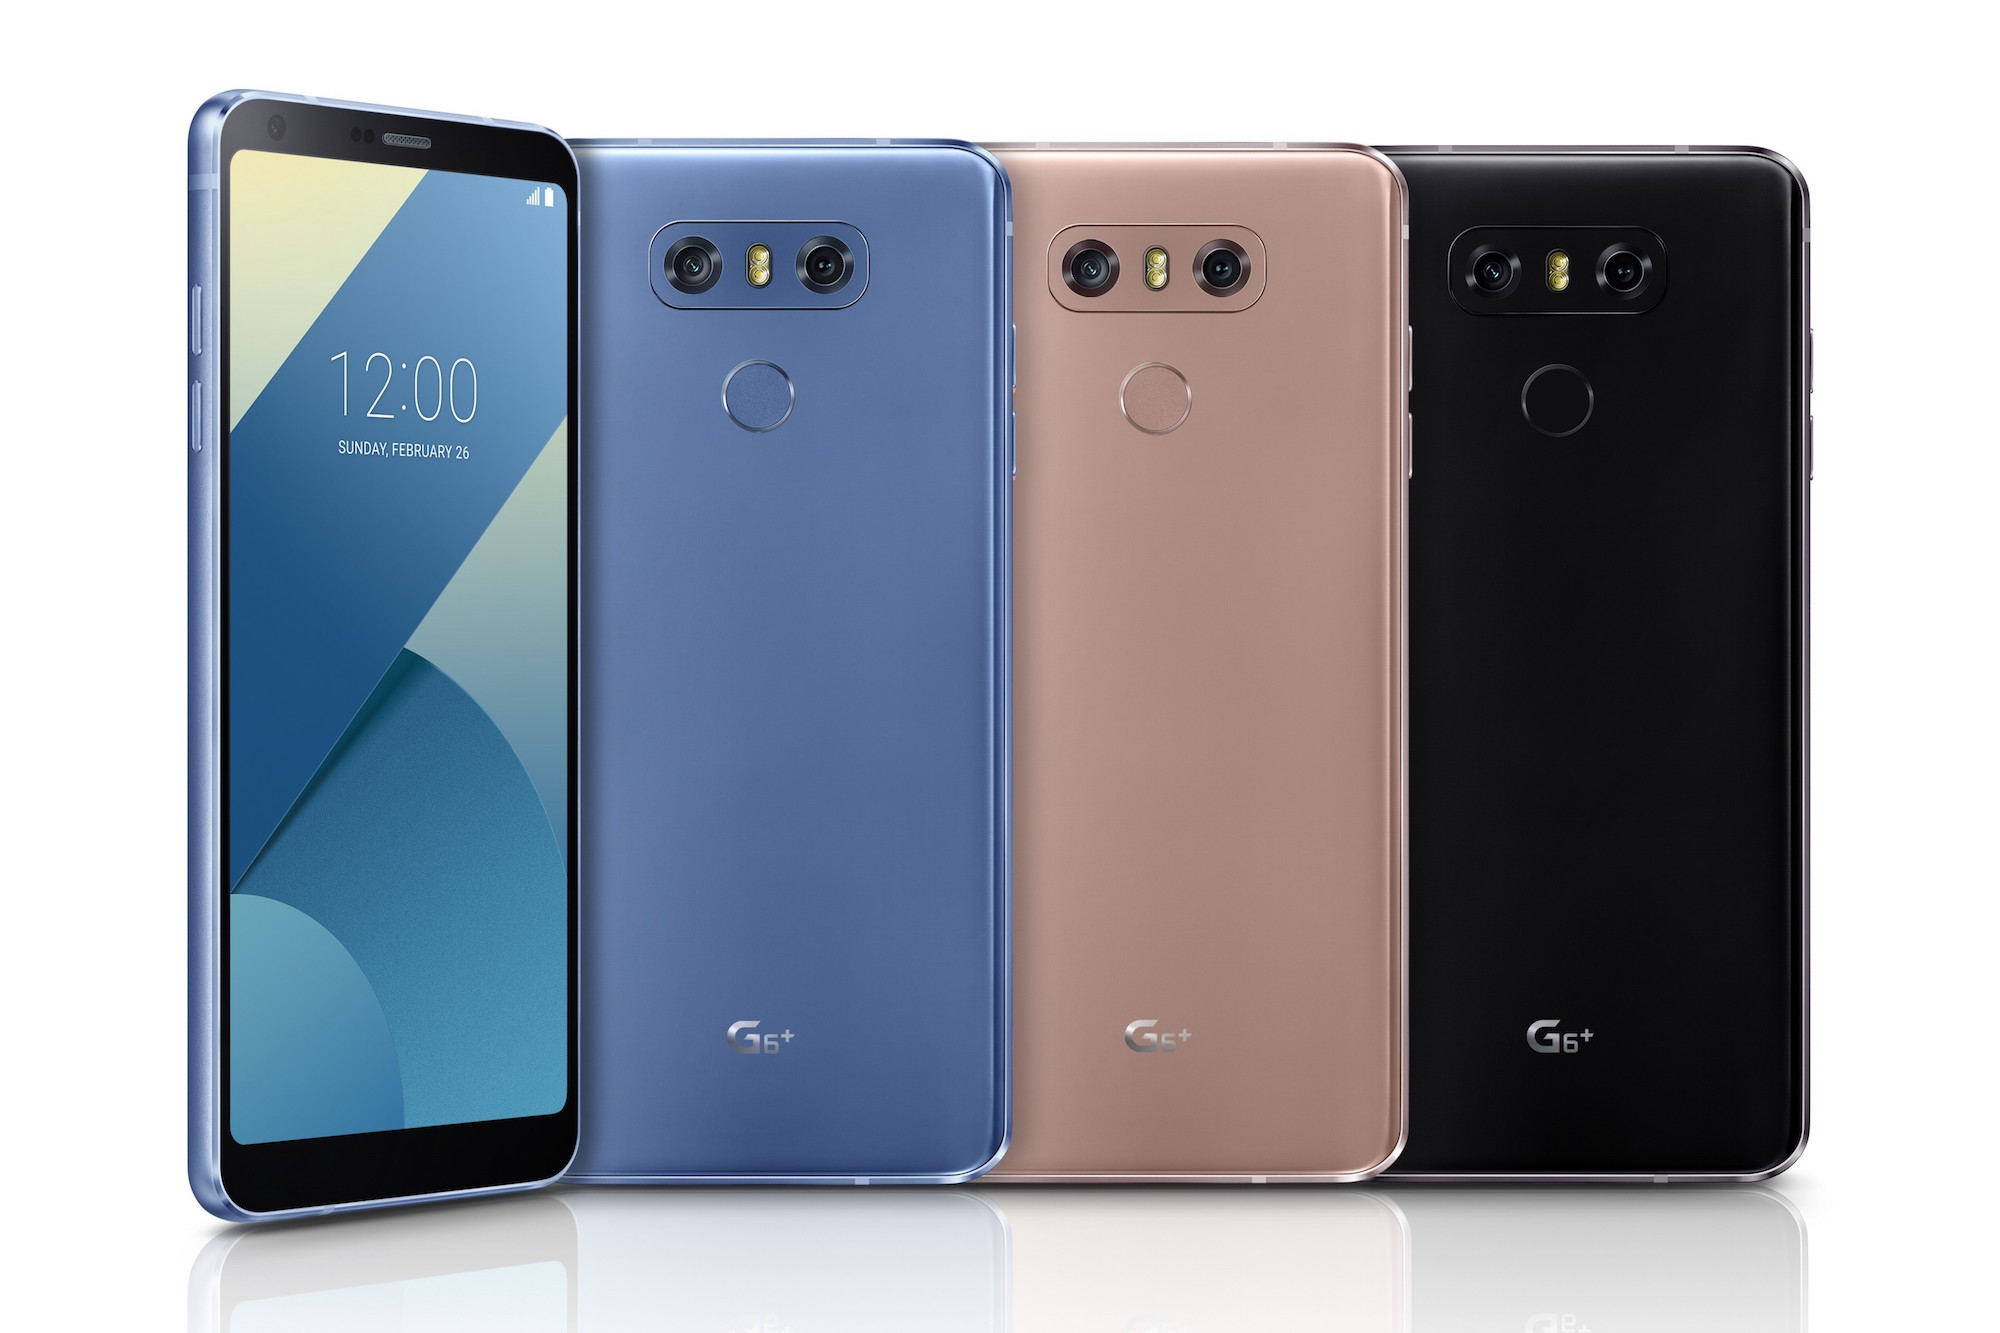 Colorfy coloring book for adults free online - Lg Finally Makes A G6 That Doesn T Skimp On Features